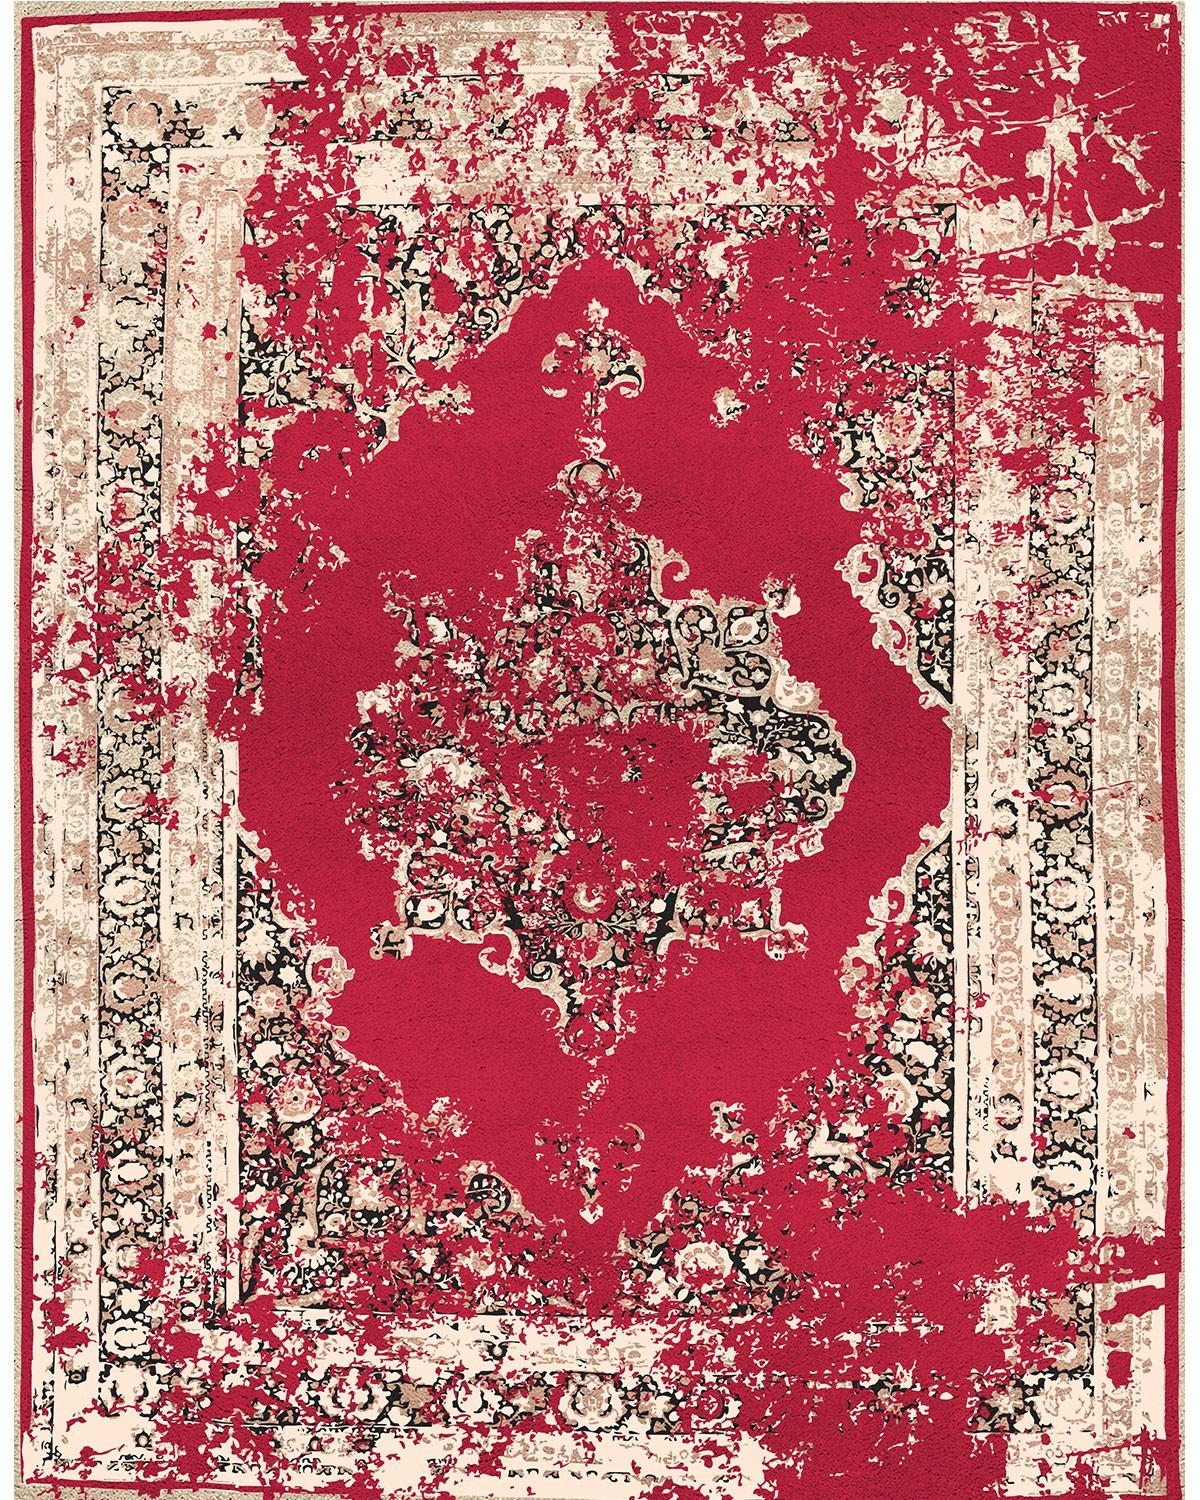 Top Dining Room Rugs You Will Fall In Love With dining room rugs Top Dining Room Rugs You Will Fall In Love With habibib